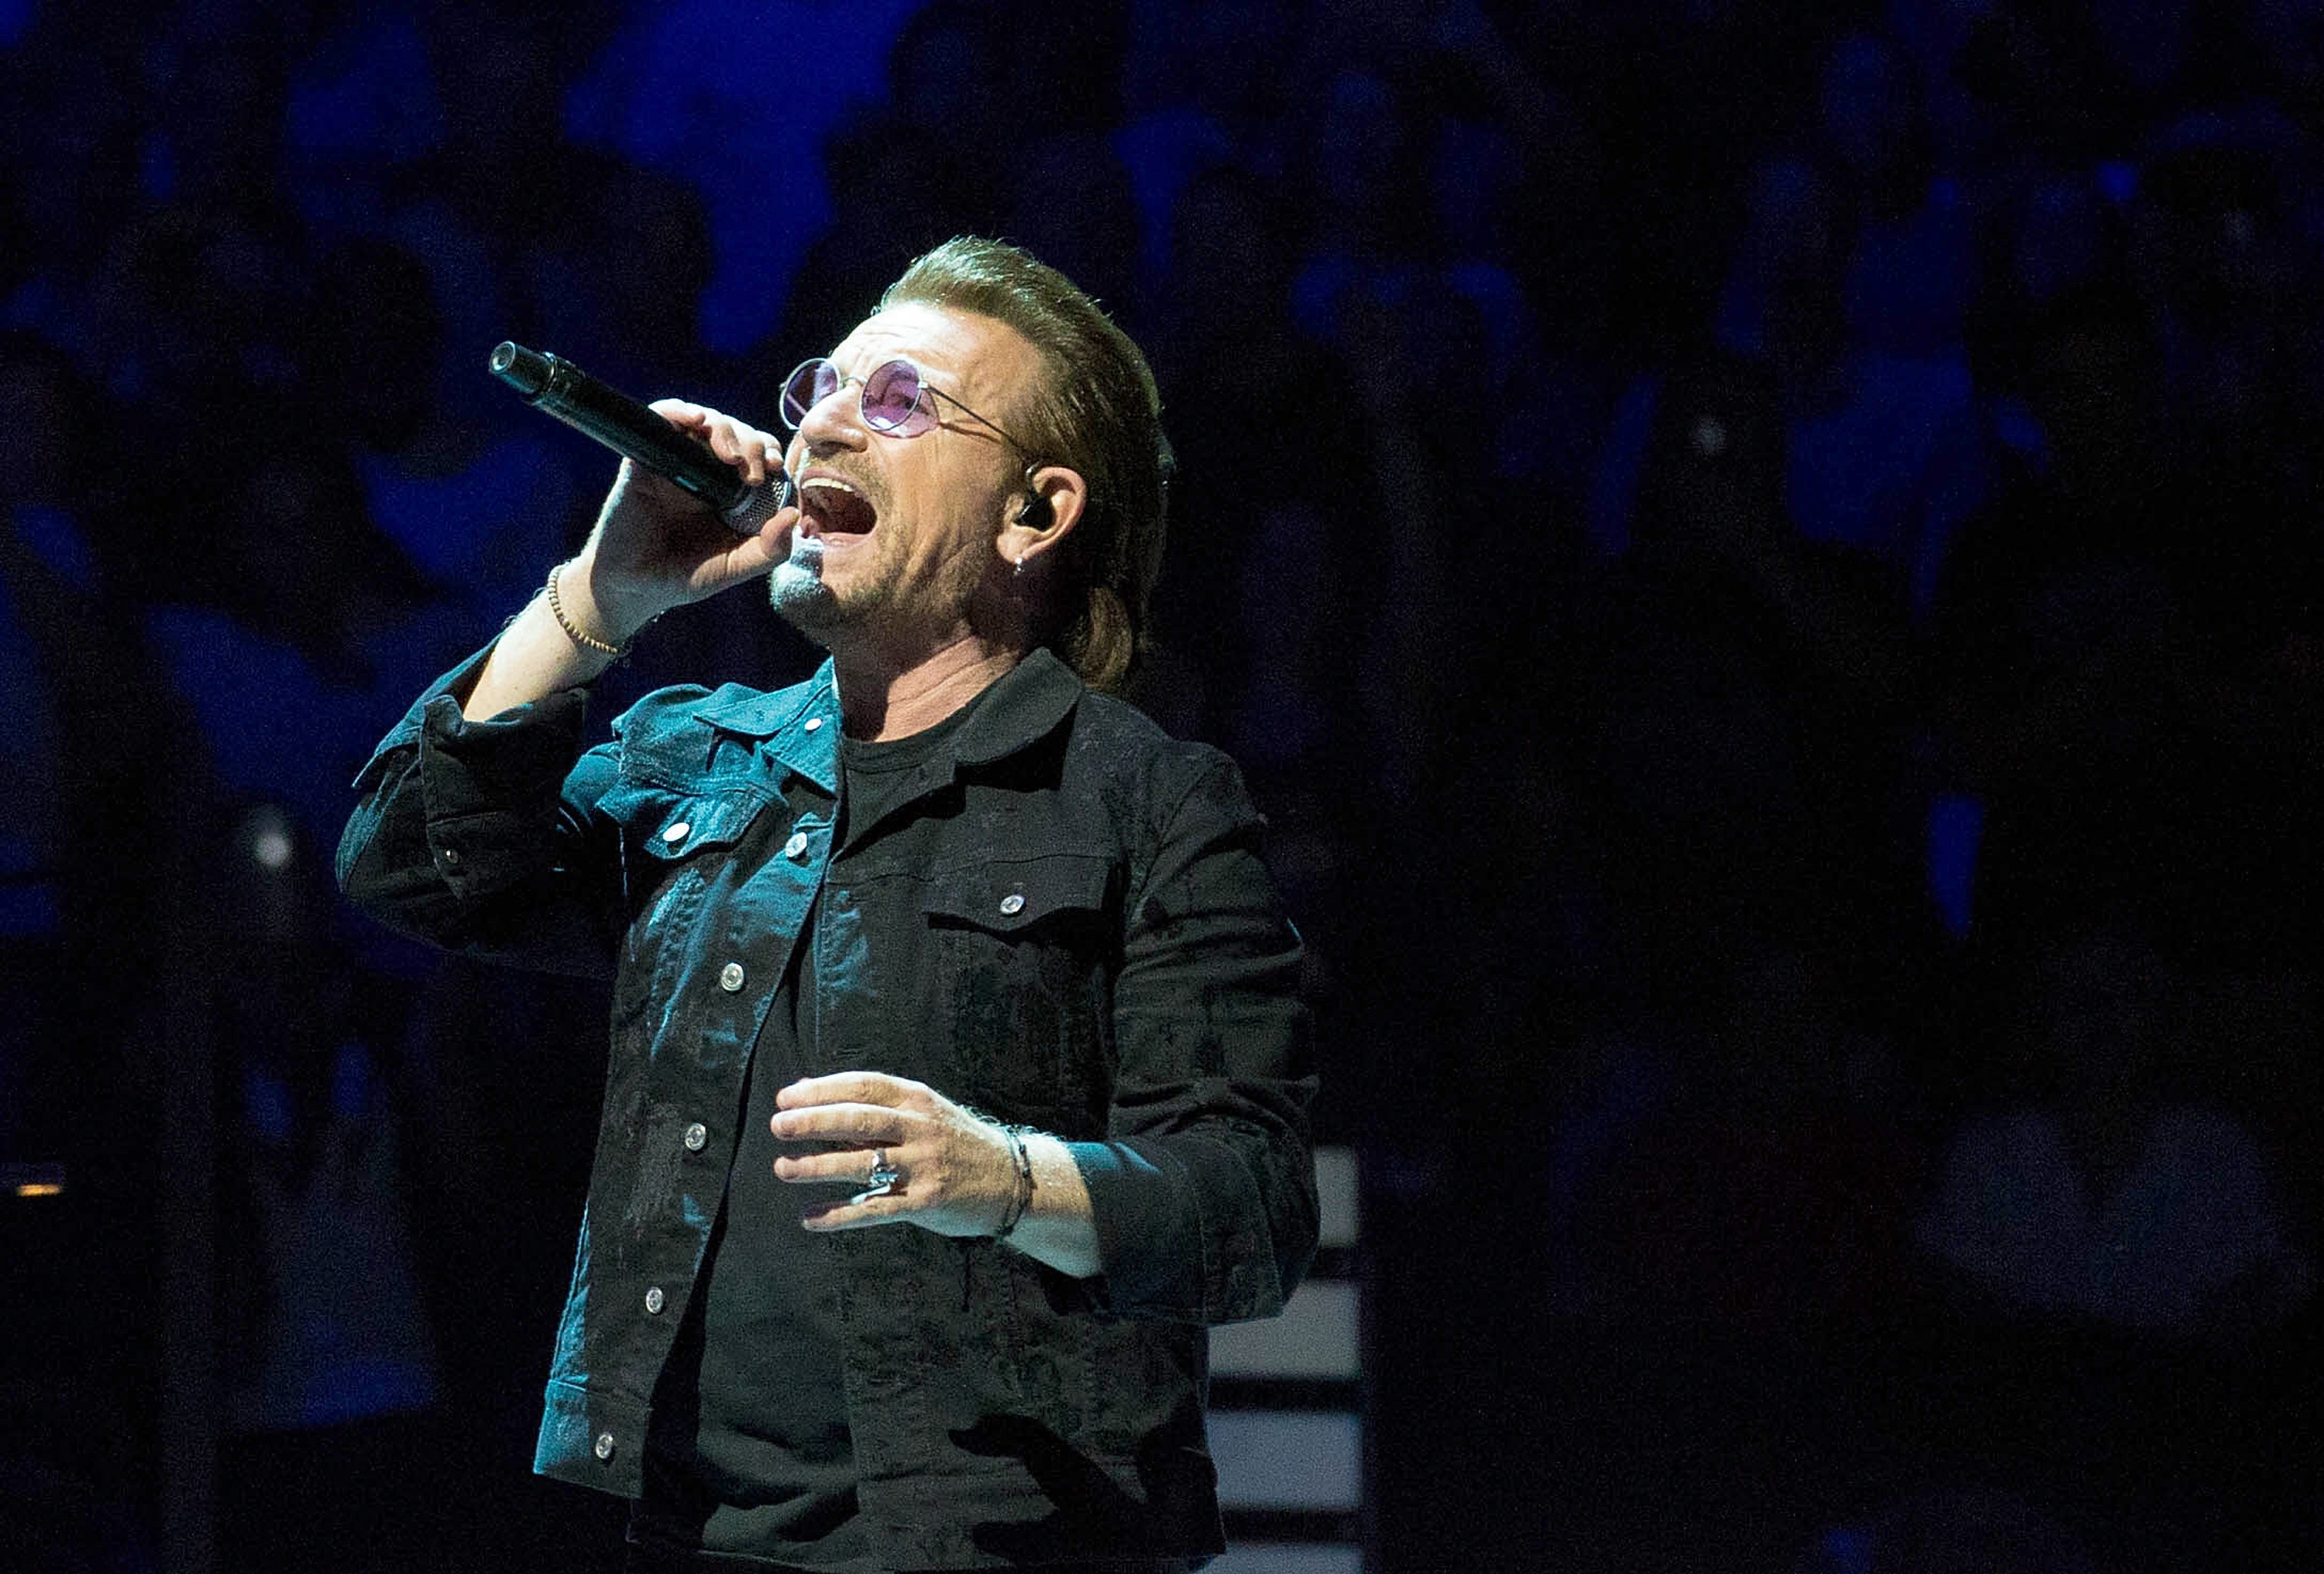 Bono of U2 performs onstage during the eXPERIENCE + iNNOCENCE TOUR at Prudential Center on June 29, 2018 in Newark, New Jersey.